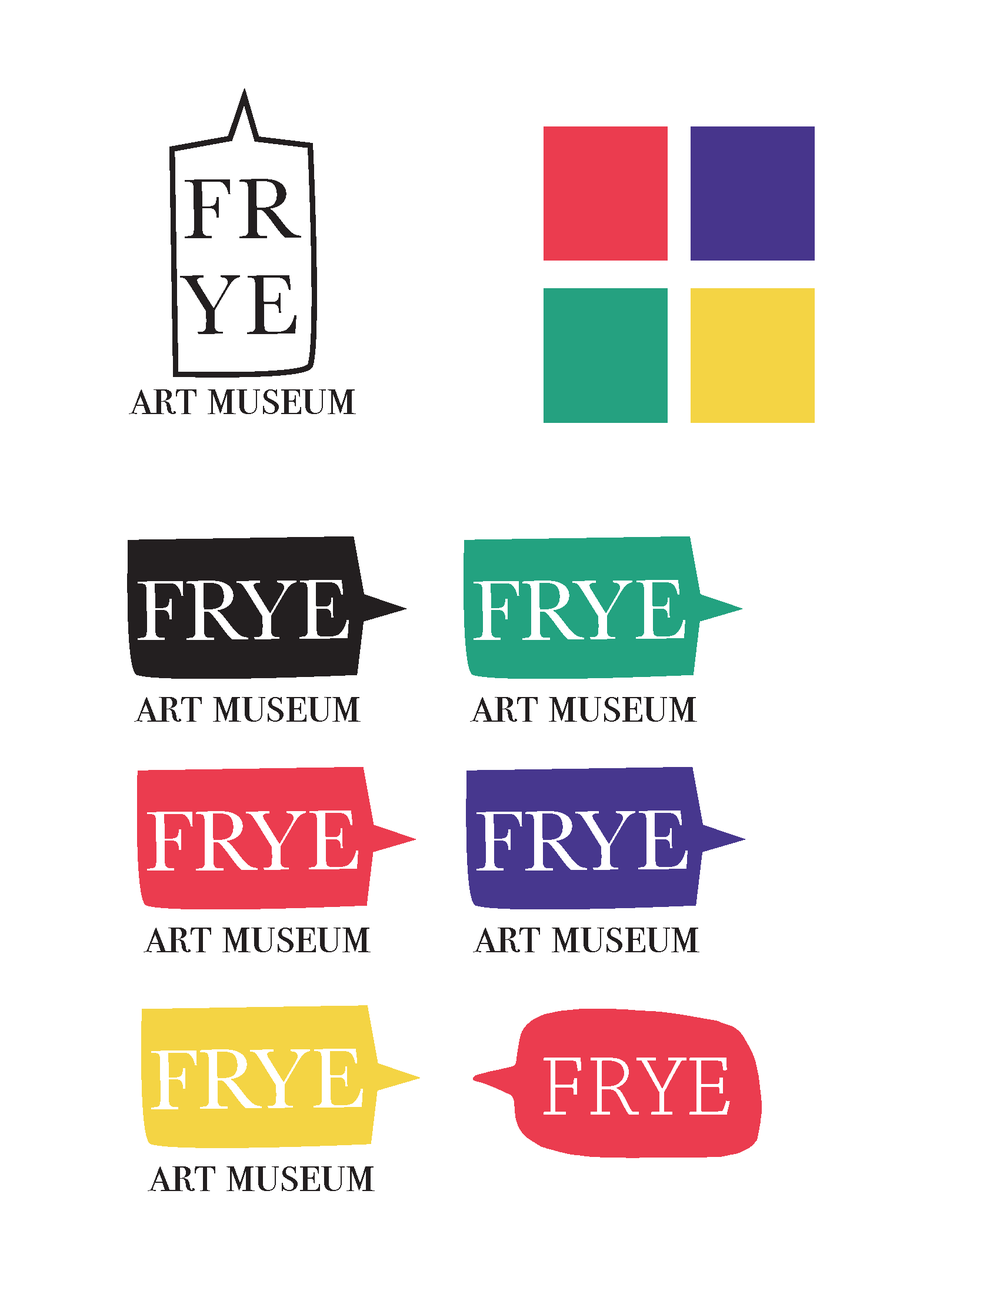 frye rebrand for crit_Page_1.png